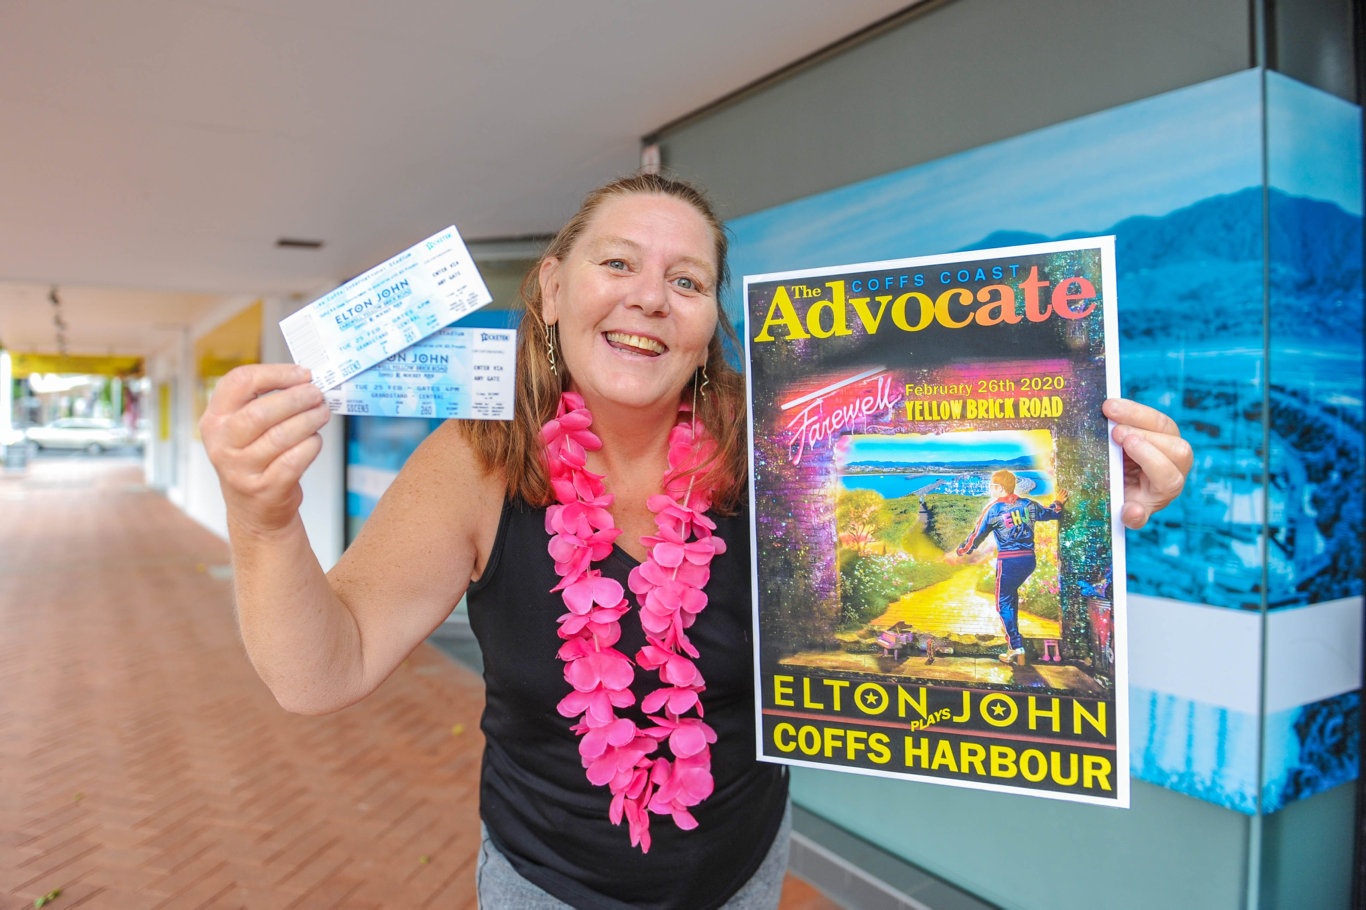 Sonya Baxter is the lucky winner of the Coffs Coast Advocate's Elton John ticket giveaway.